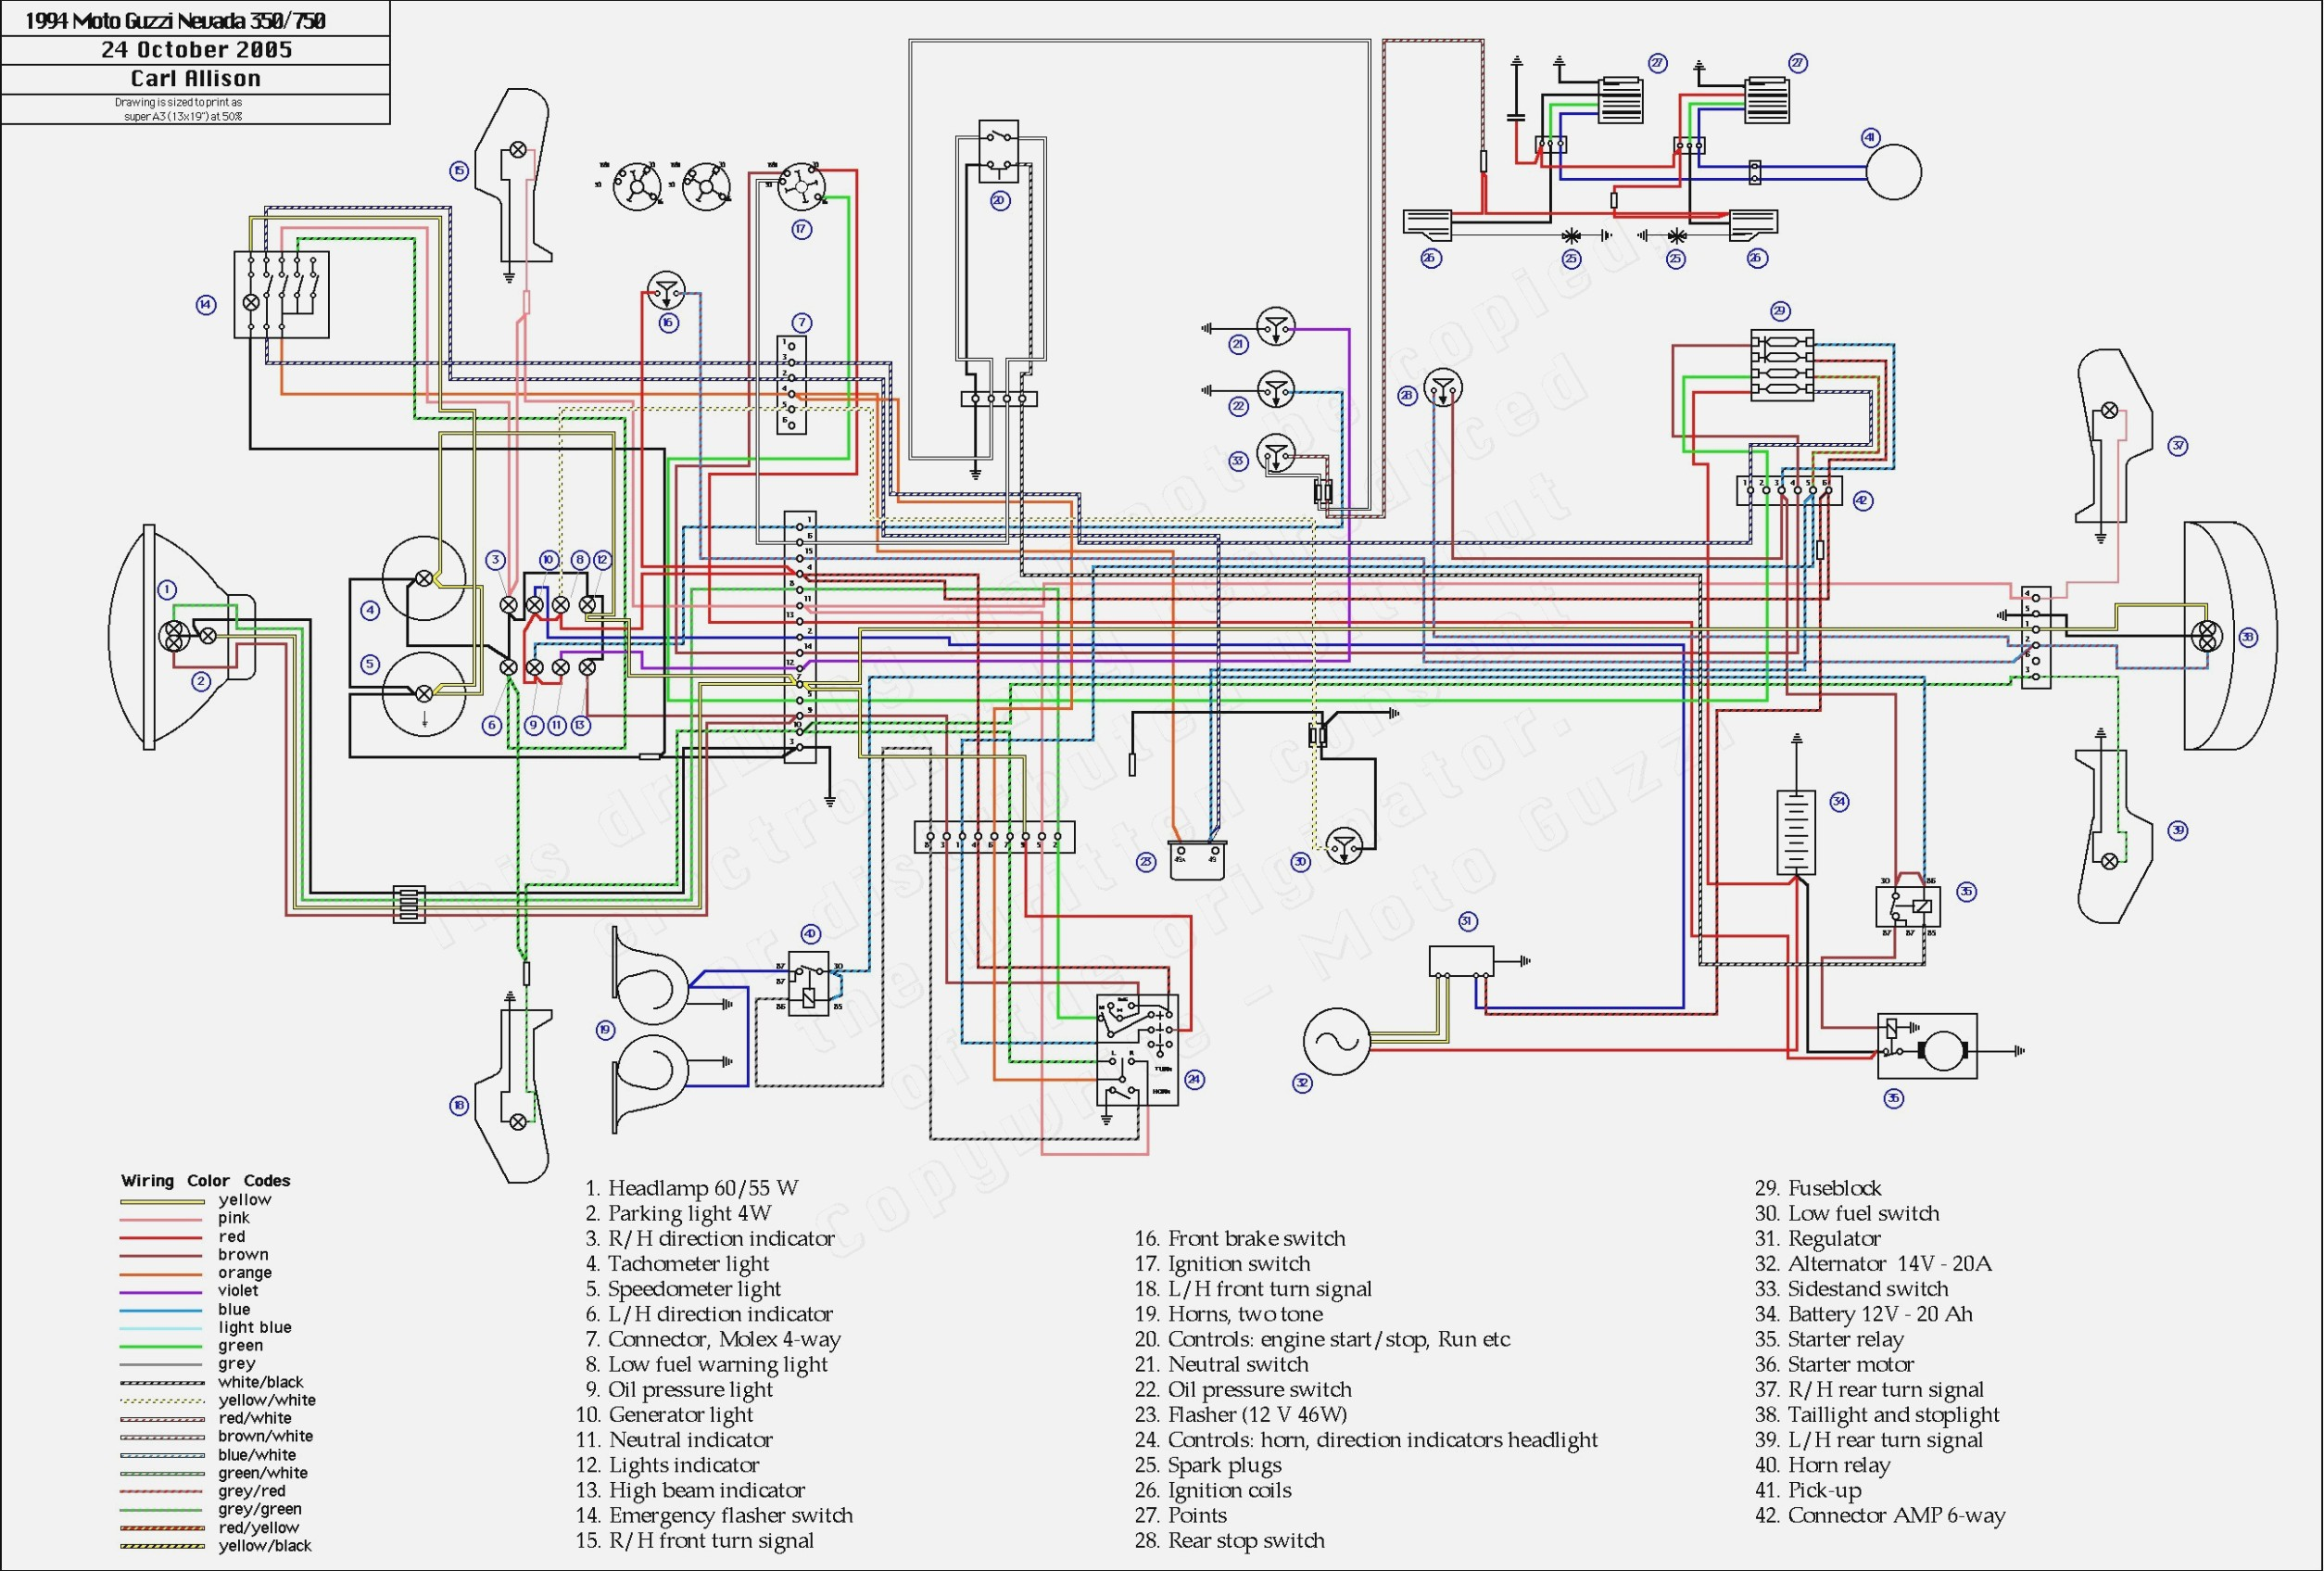 Turn Signal Flasher Wiring Diagram Dyna Turn Signal Wiring Diagram Wiring Diagram toolbox Of Turn Signal Flasher Wiring Diagram Turn Signal Wiring Diagrams Wiring Diagrams Konsult